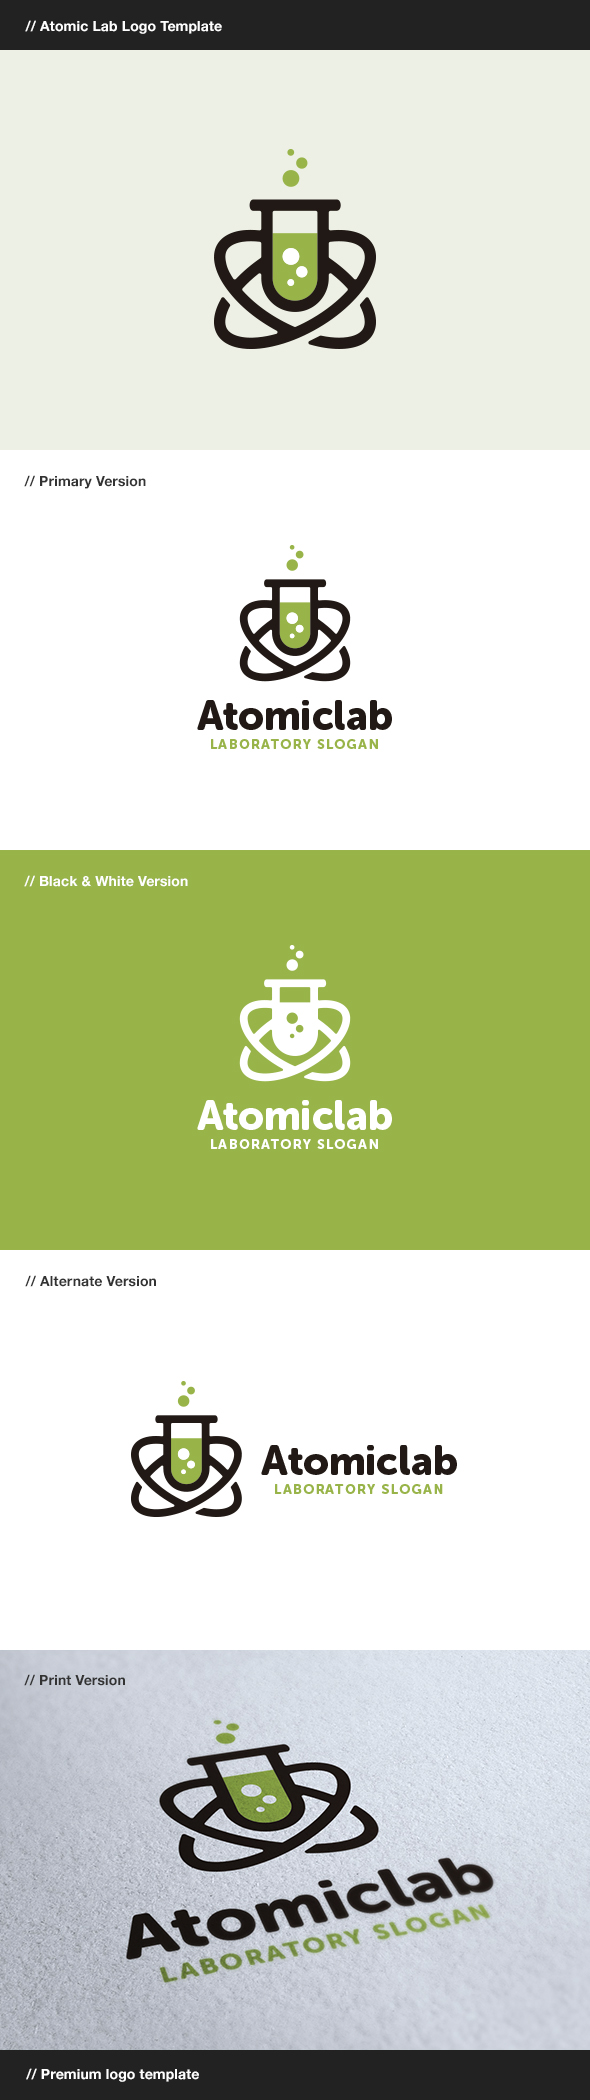 GraphicRiver Atomic Lab Laboratory Logo 8138791